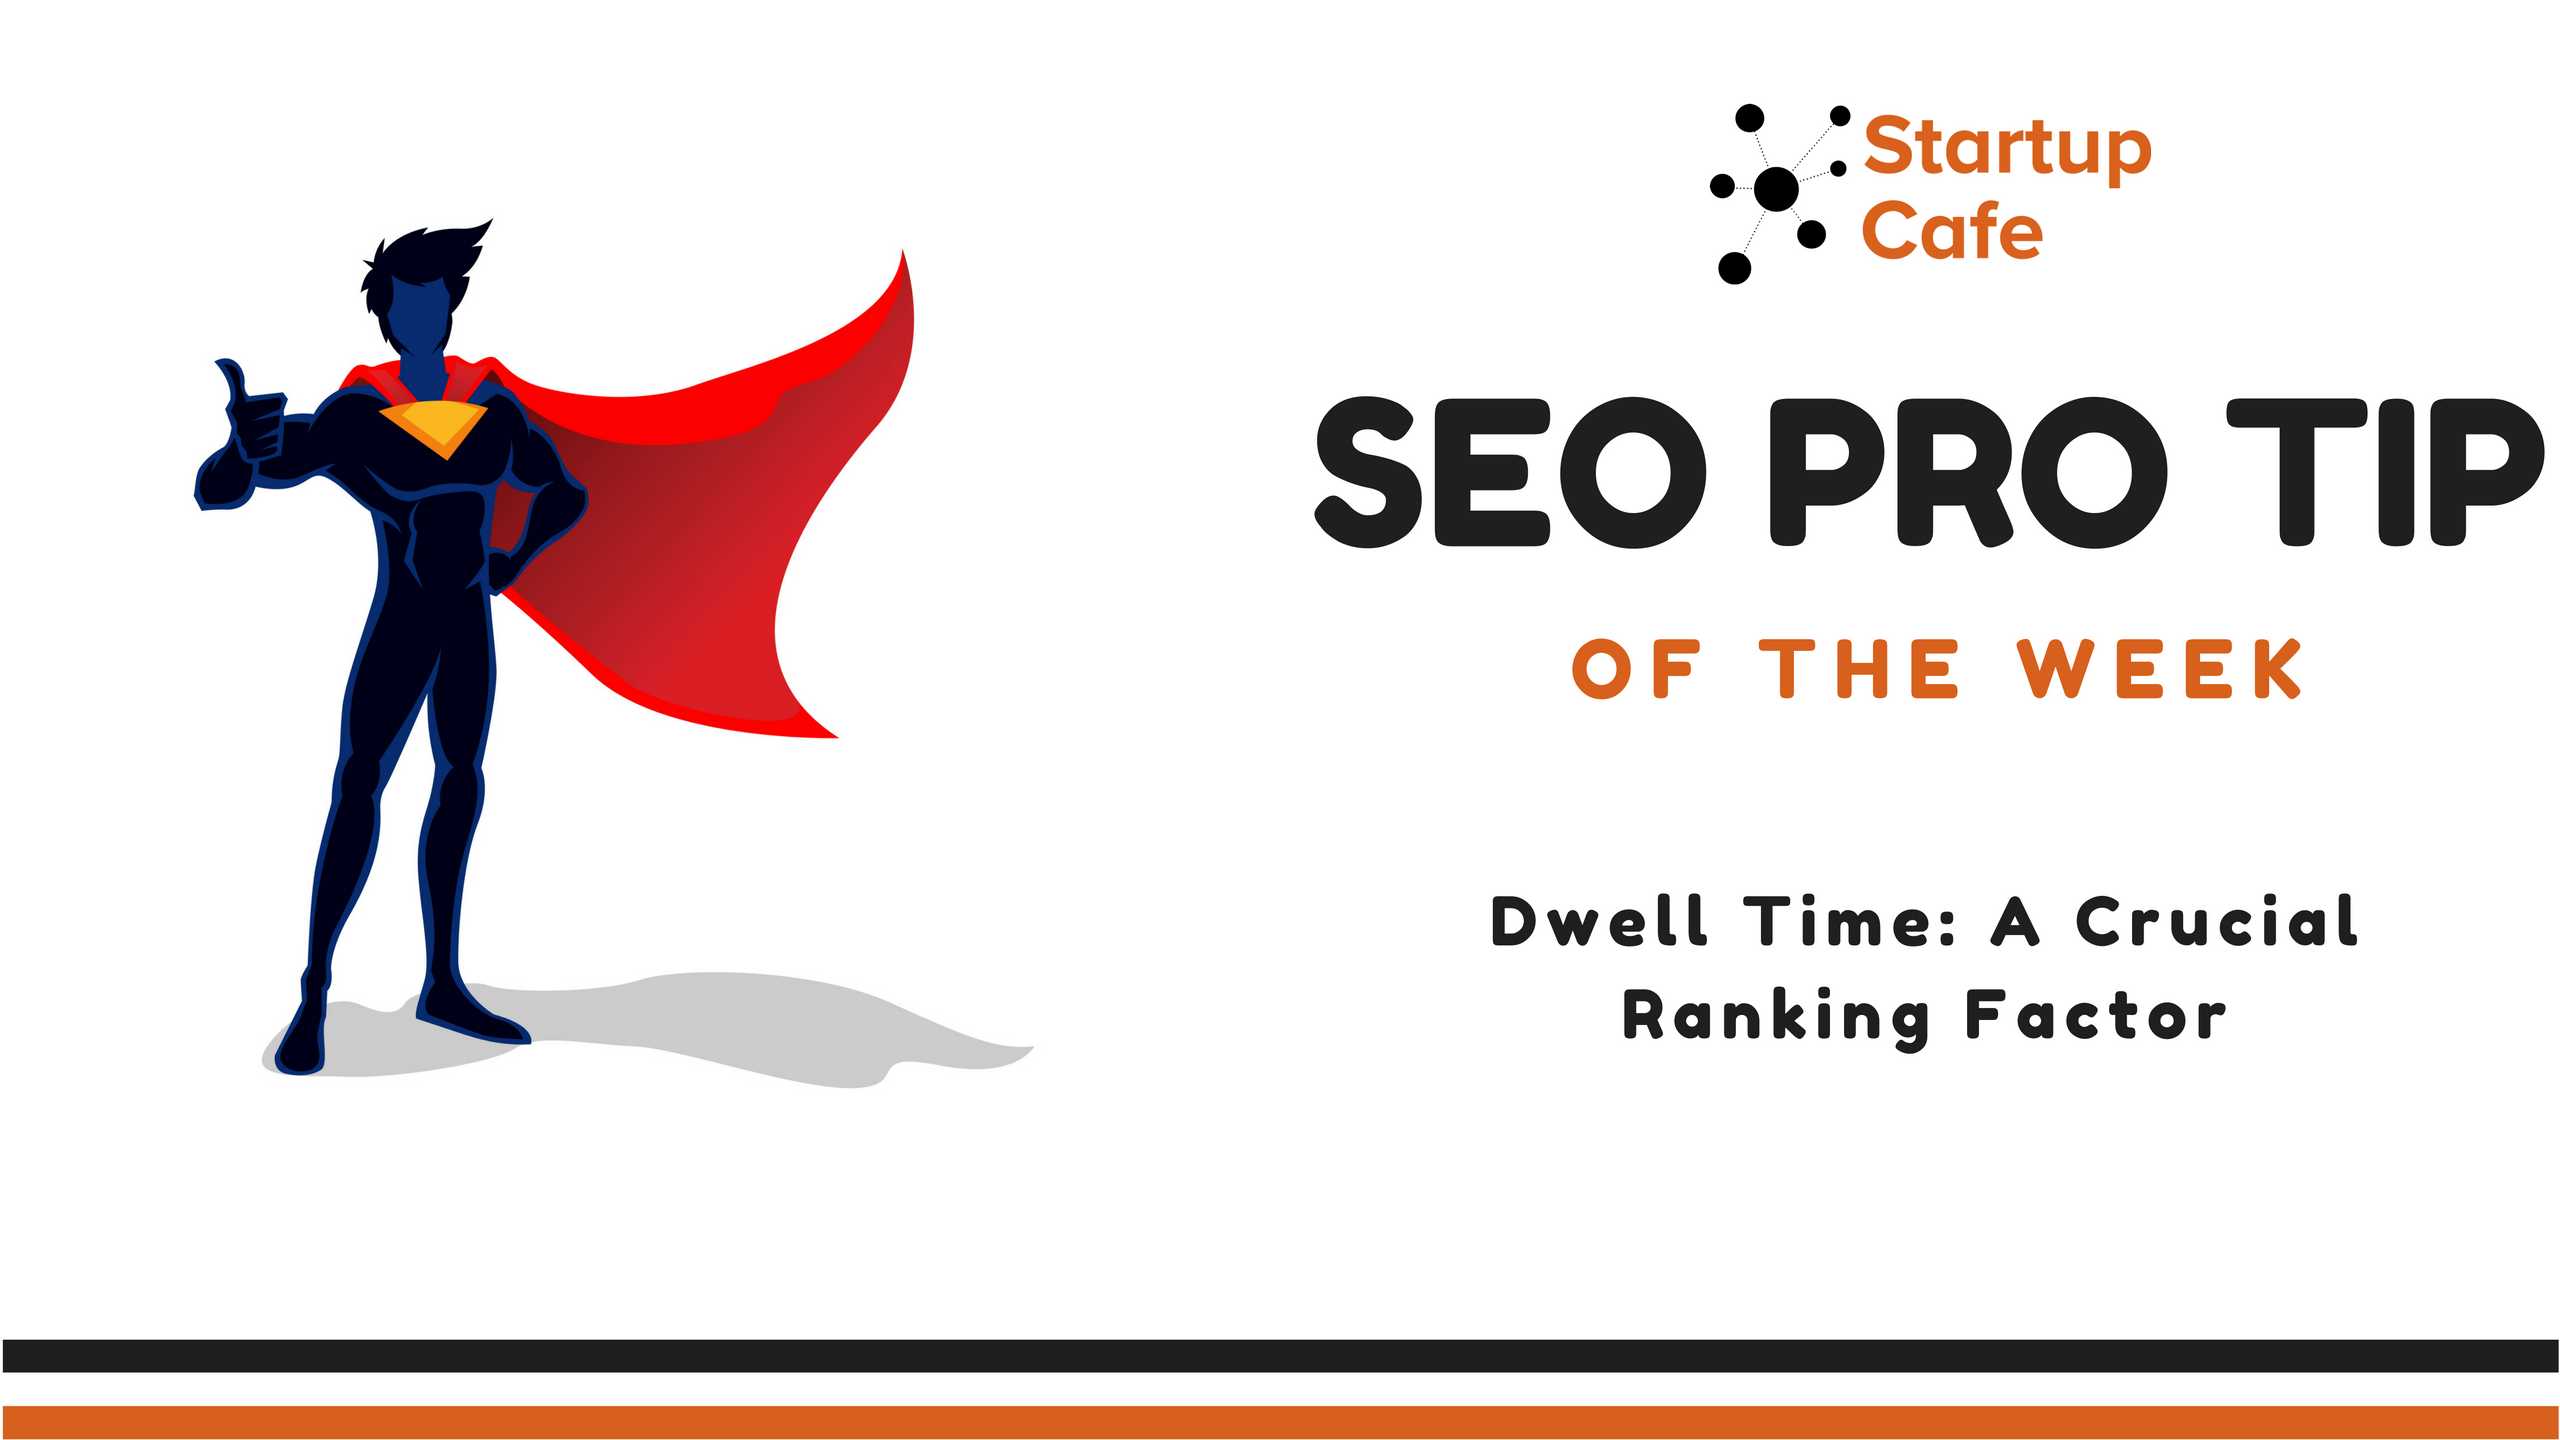 SEO Pro Tip of the Week